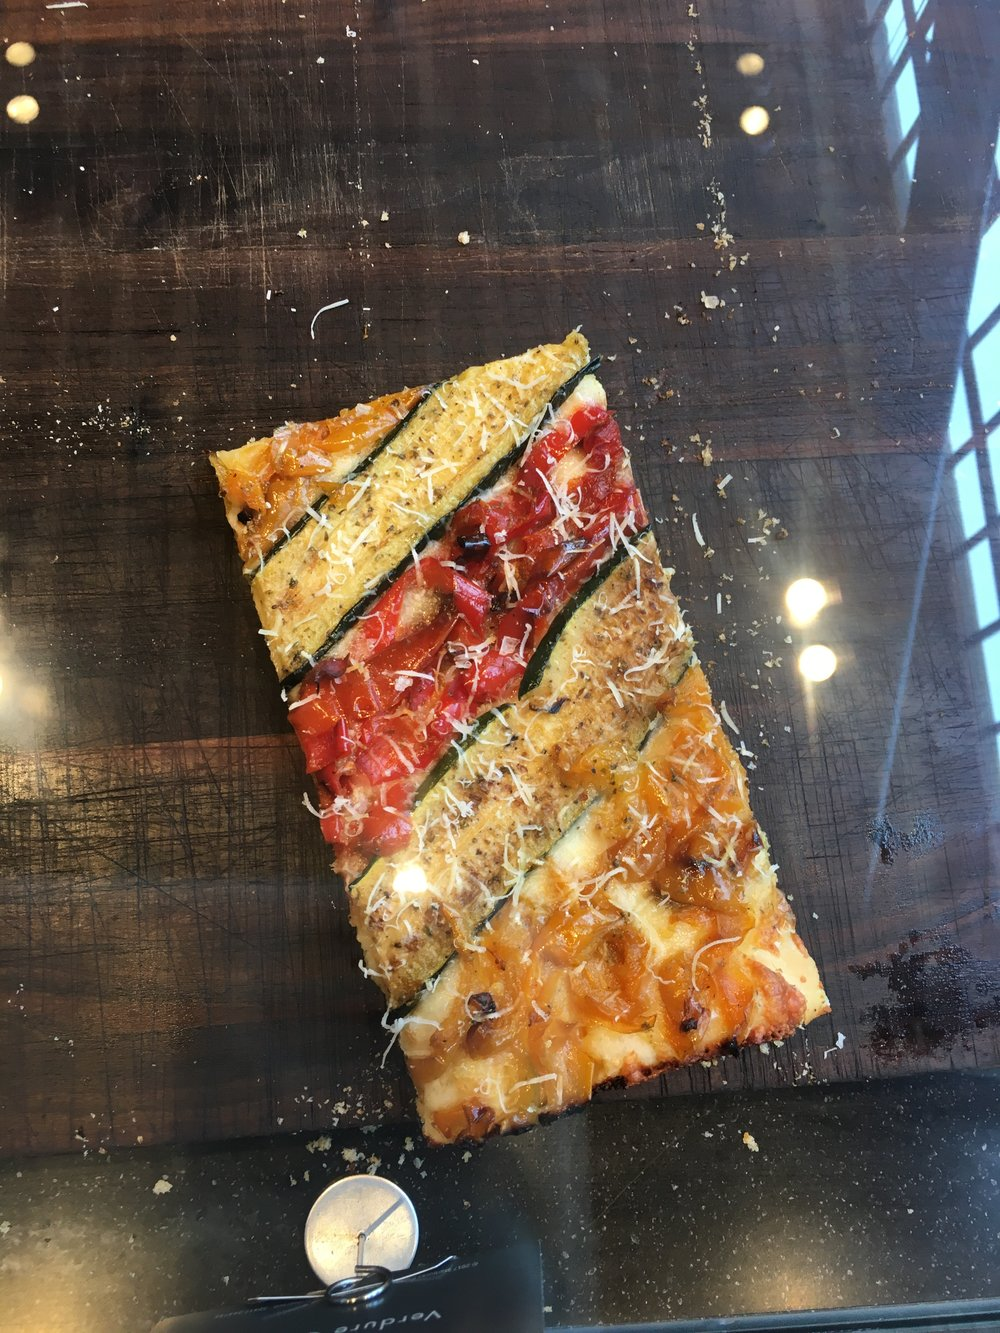 Starbucks Roastery Reserve is not only fun and great for coffee, check out their awesome pizza too!